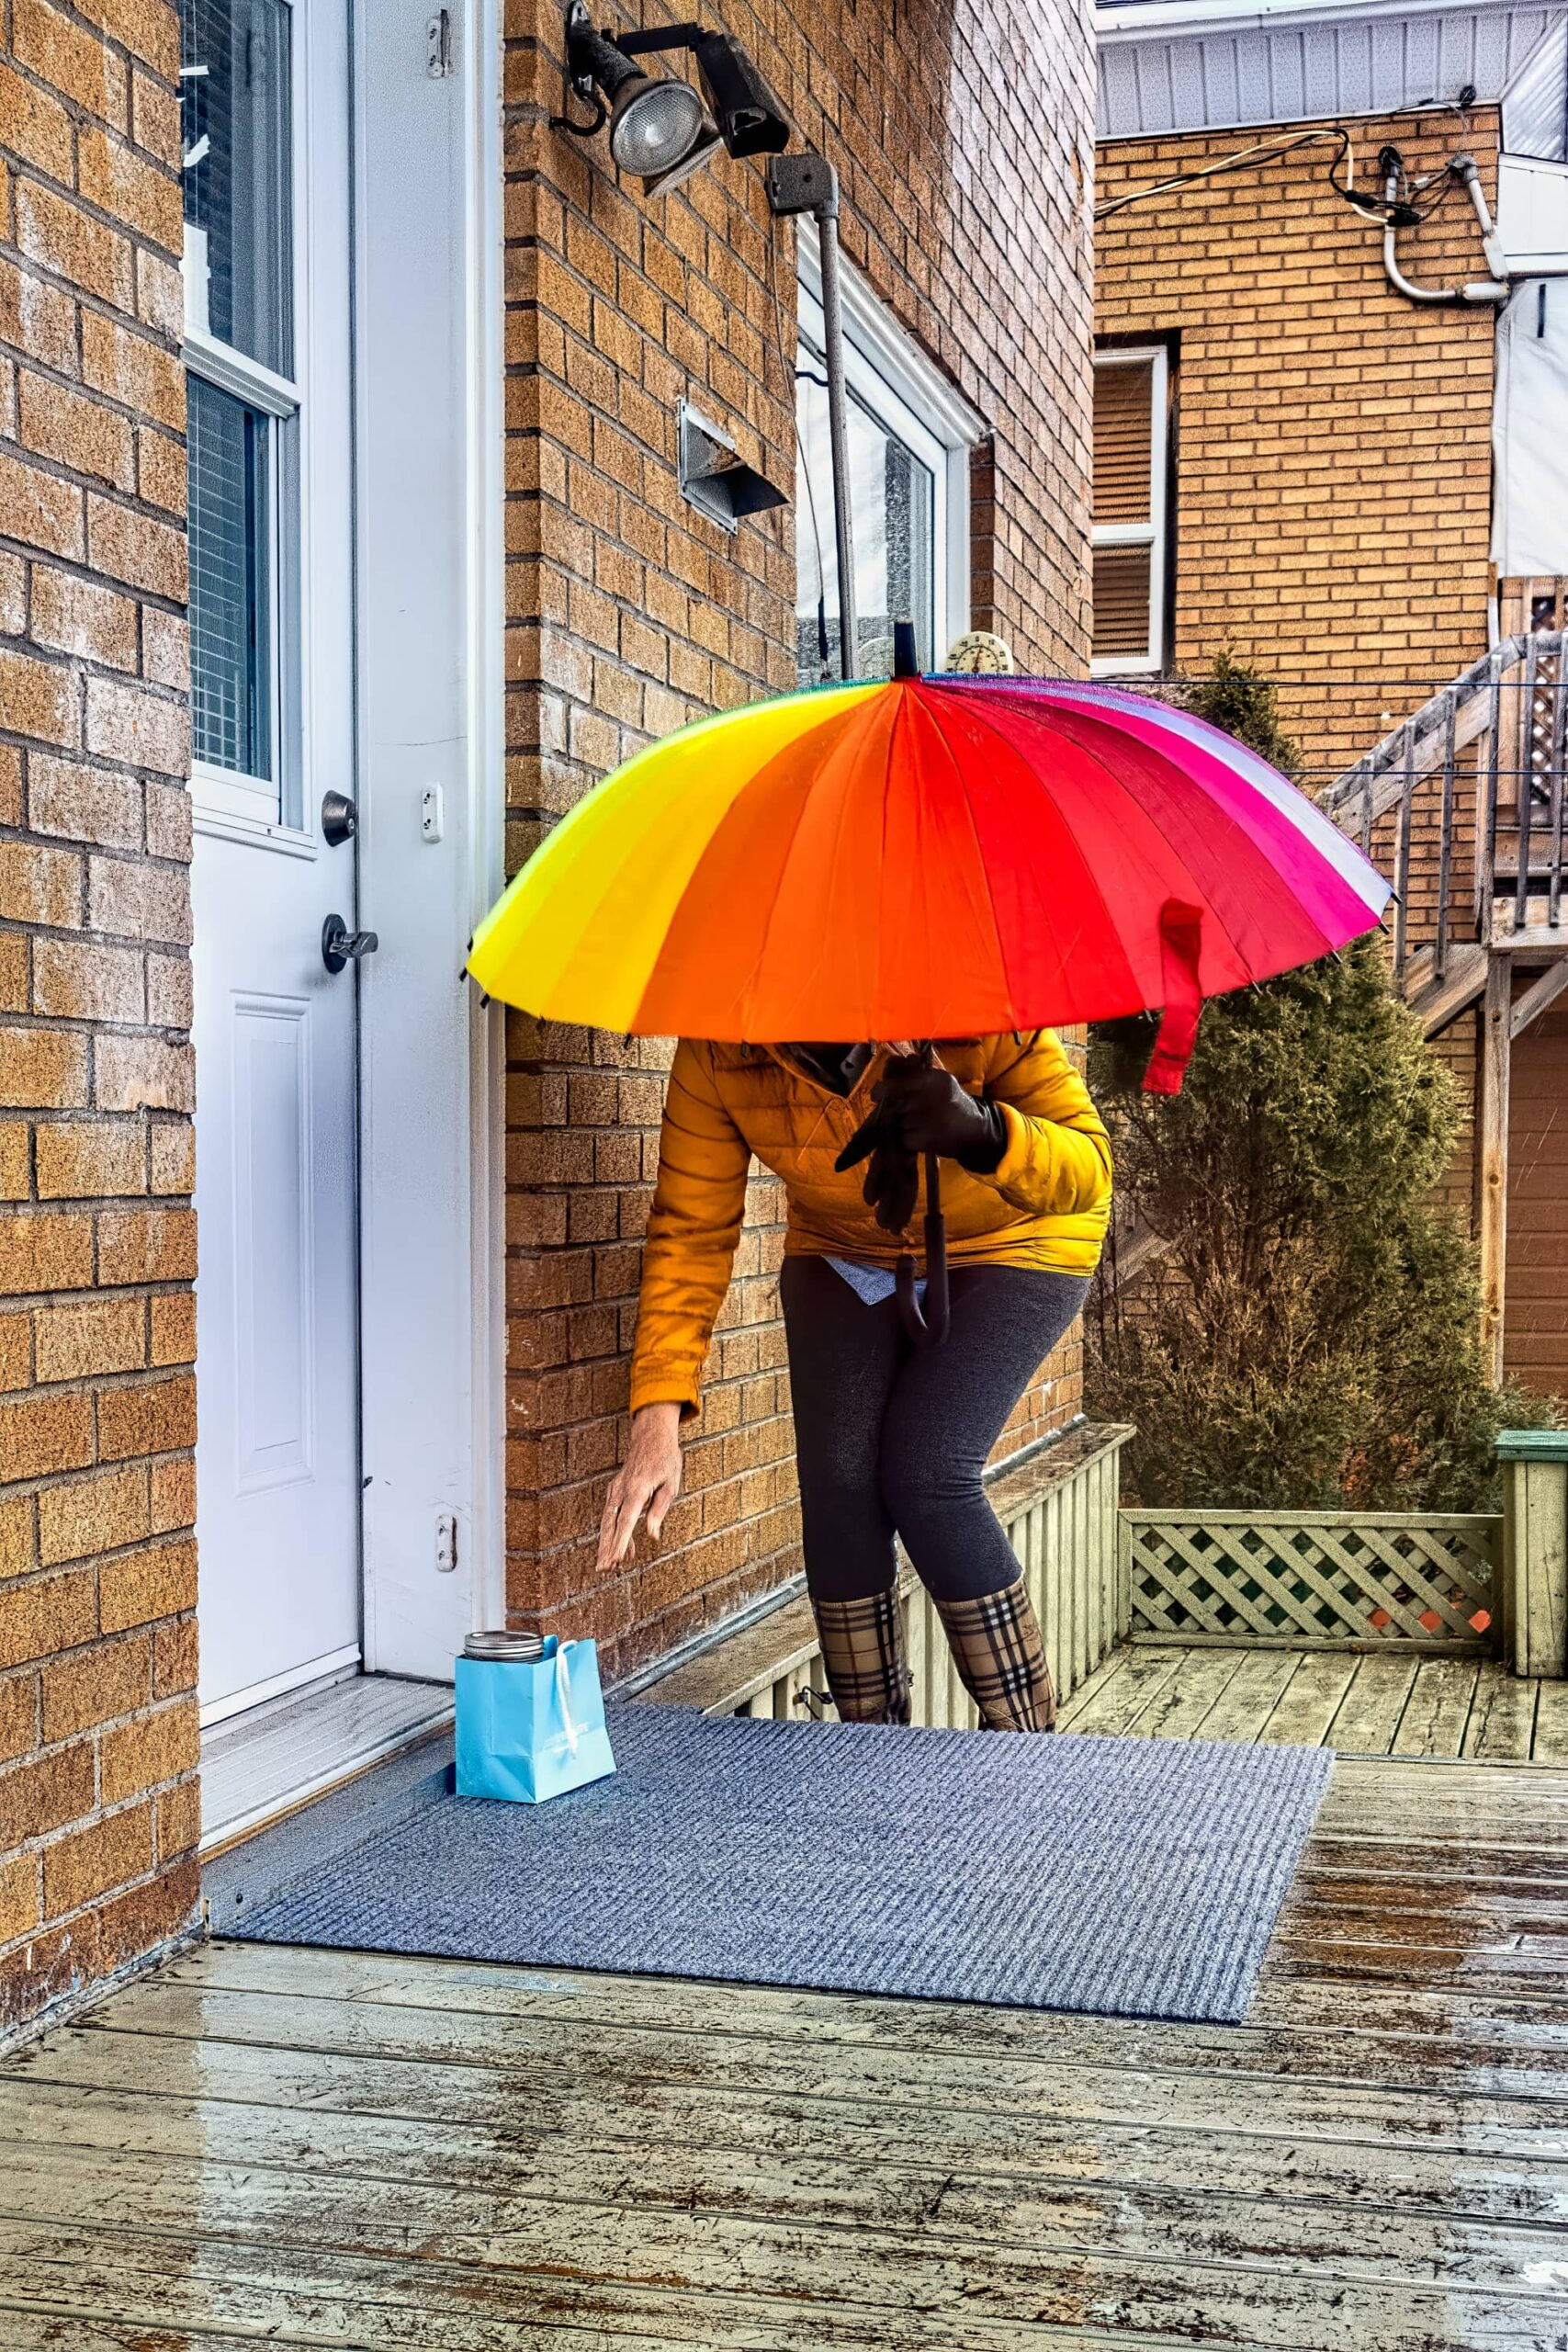 A woman with an umbrella leaving a package outside a door of a house